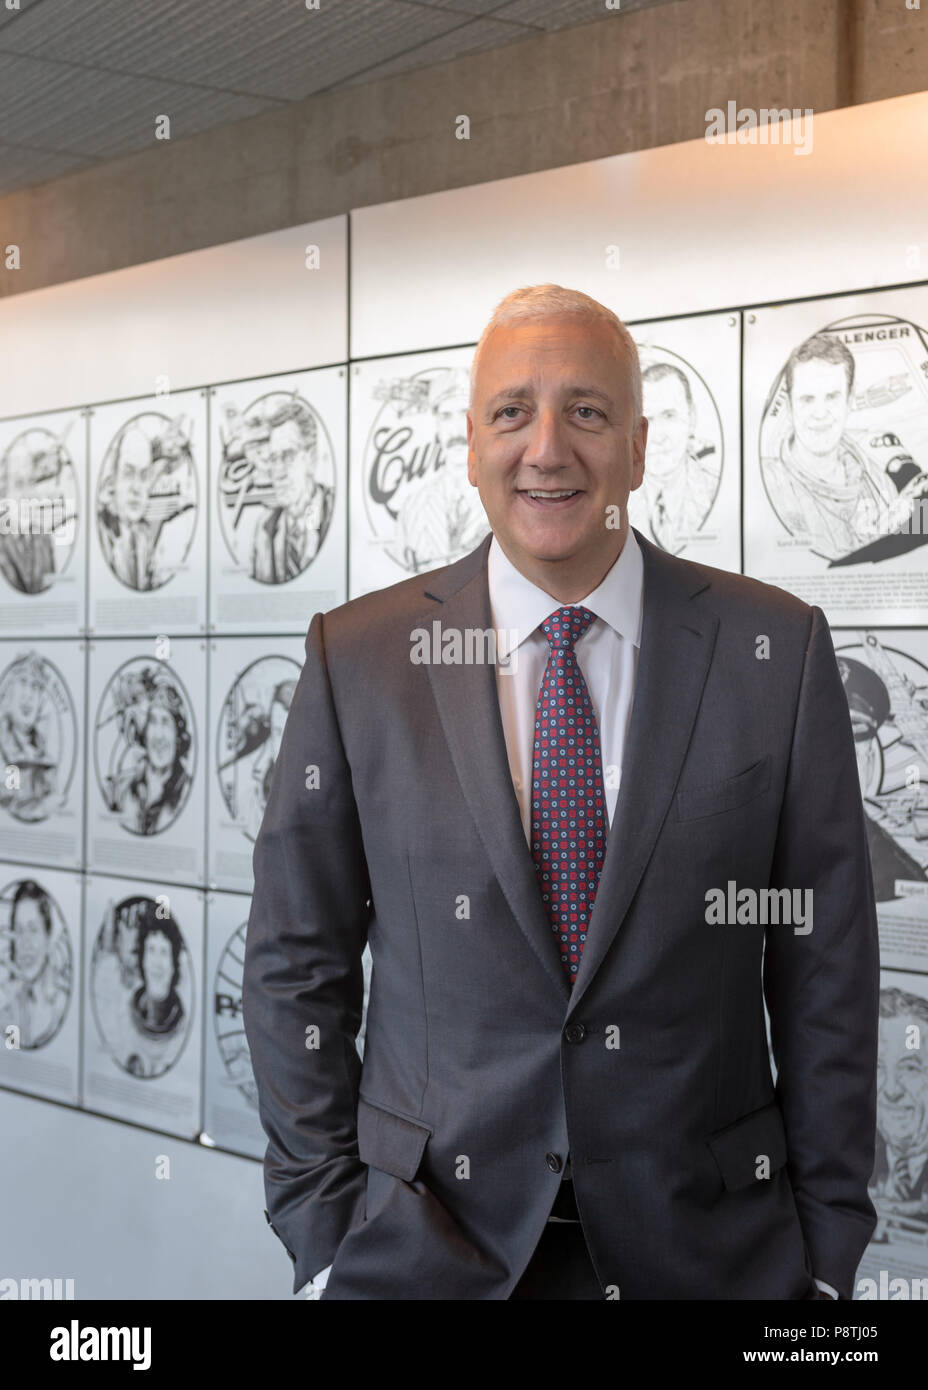 Garden City, New York, USA. June 21, 2018. Former NASA space shuttle astronaut MIKE MASSIMINO stands next to Long Island Air & Space Hall of Fame wall of plaques, during his induction into Class of 2018 at Cradle of Aviation Museum. - Stock Image